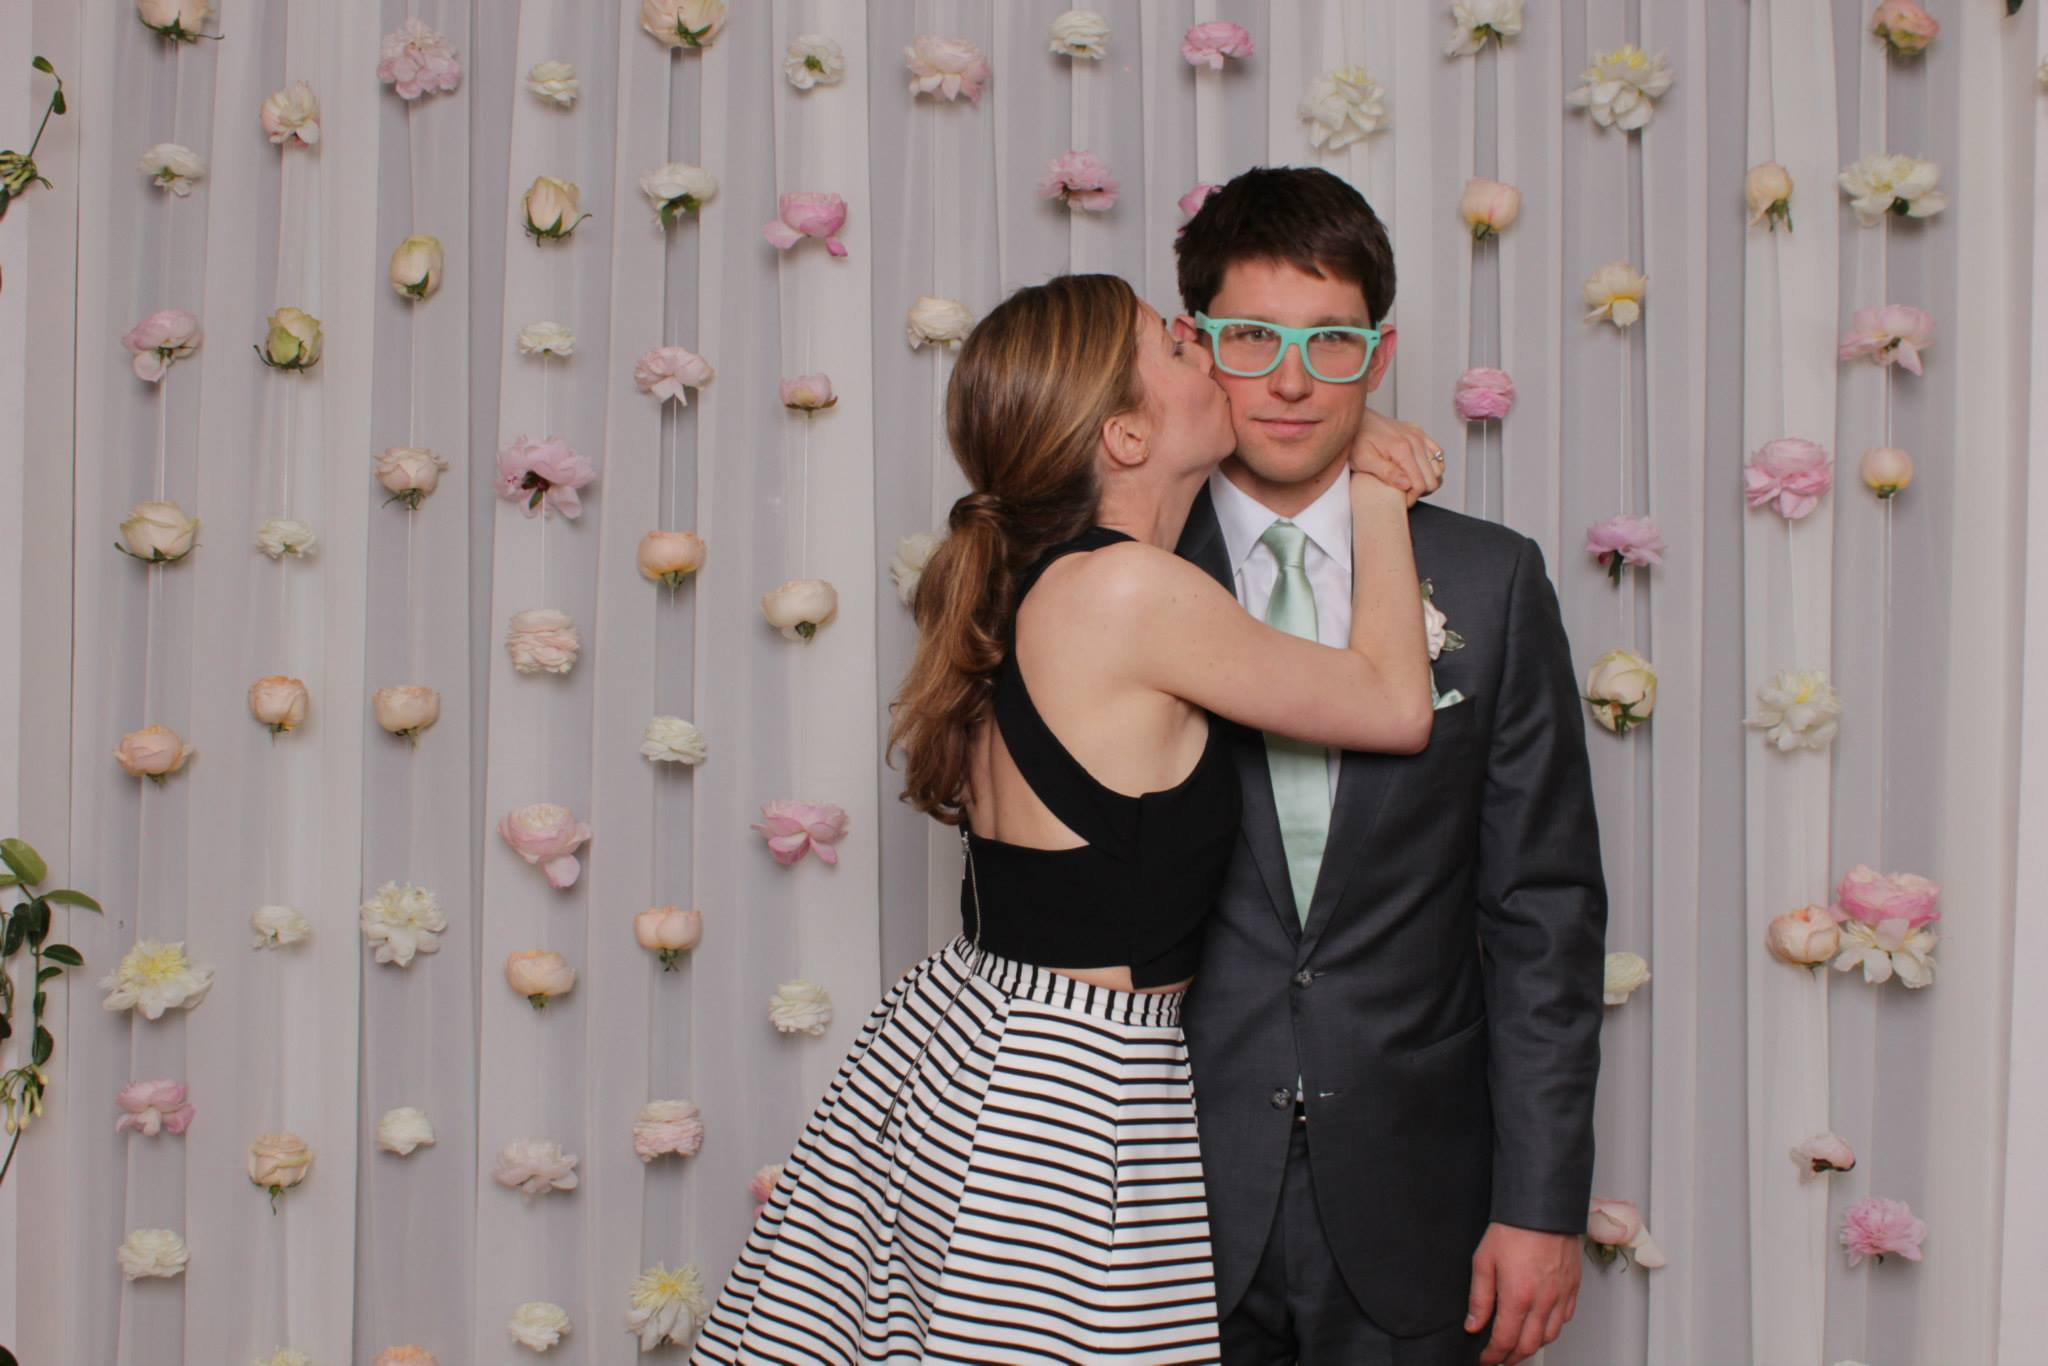 photo-booth-background-flowers